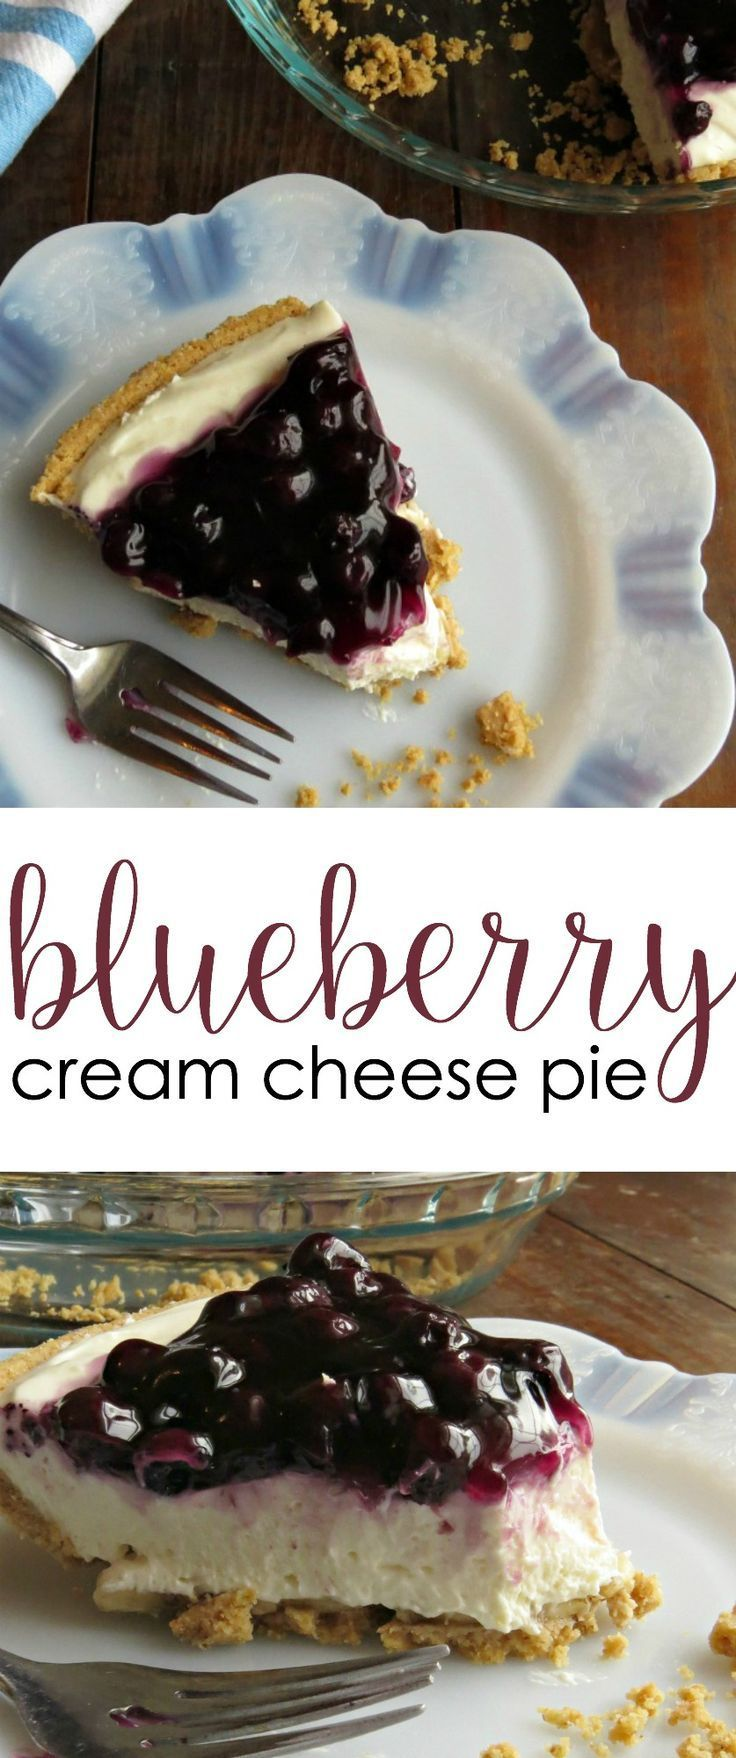 Looking For Cream Cheese Desserts This Blueberry Cream Cheese Pie Recipe Is Super Easy And